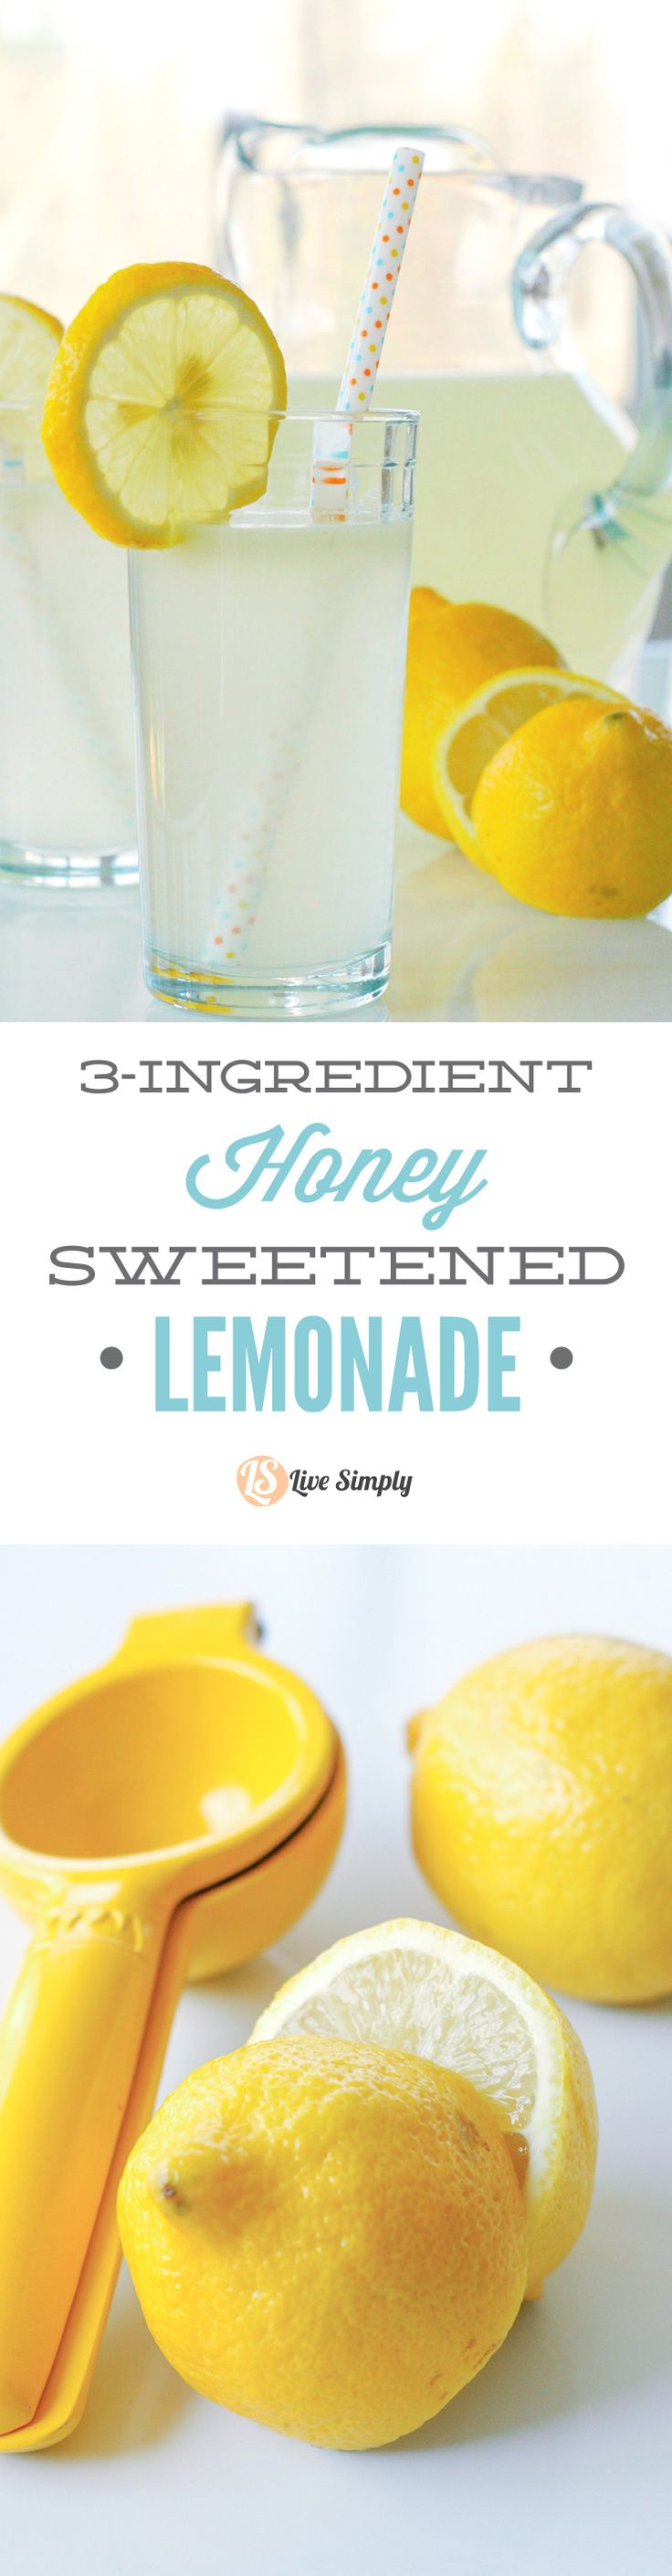 Only 3 ingredients and naturally-sweetened with honey! This homemade lemonade is so easy to make. http://livesimply.me/2015/05/23/3-ingredient-honey-sweetened-lemonade/